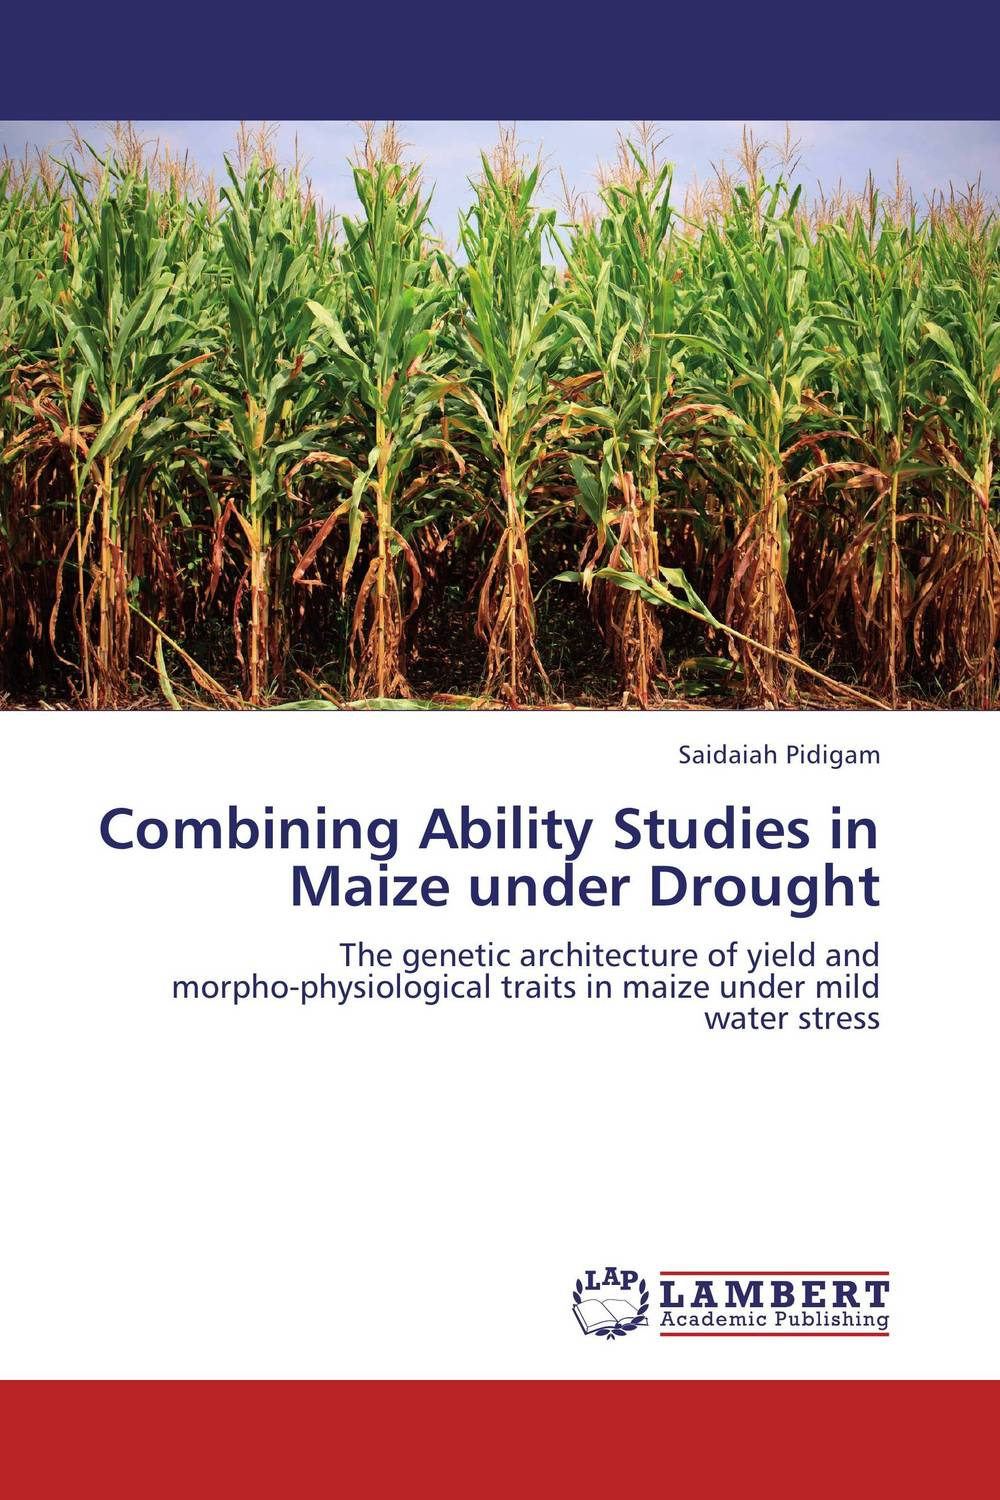 Combining Ability Studies in Maize under Drought